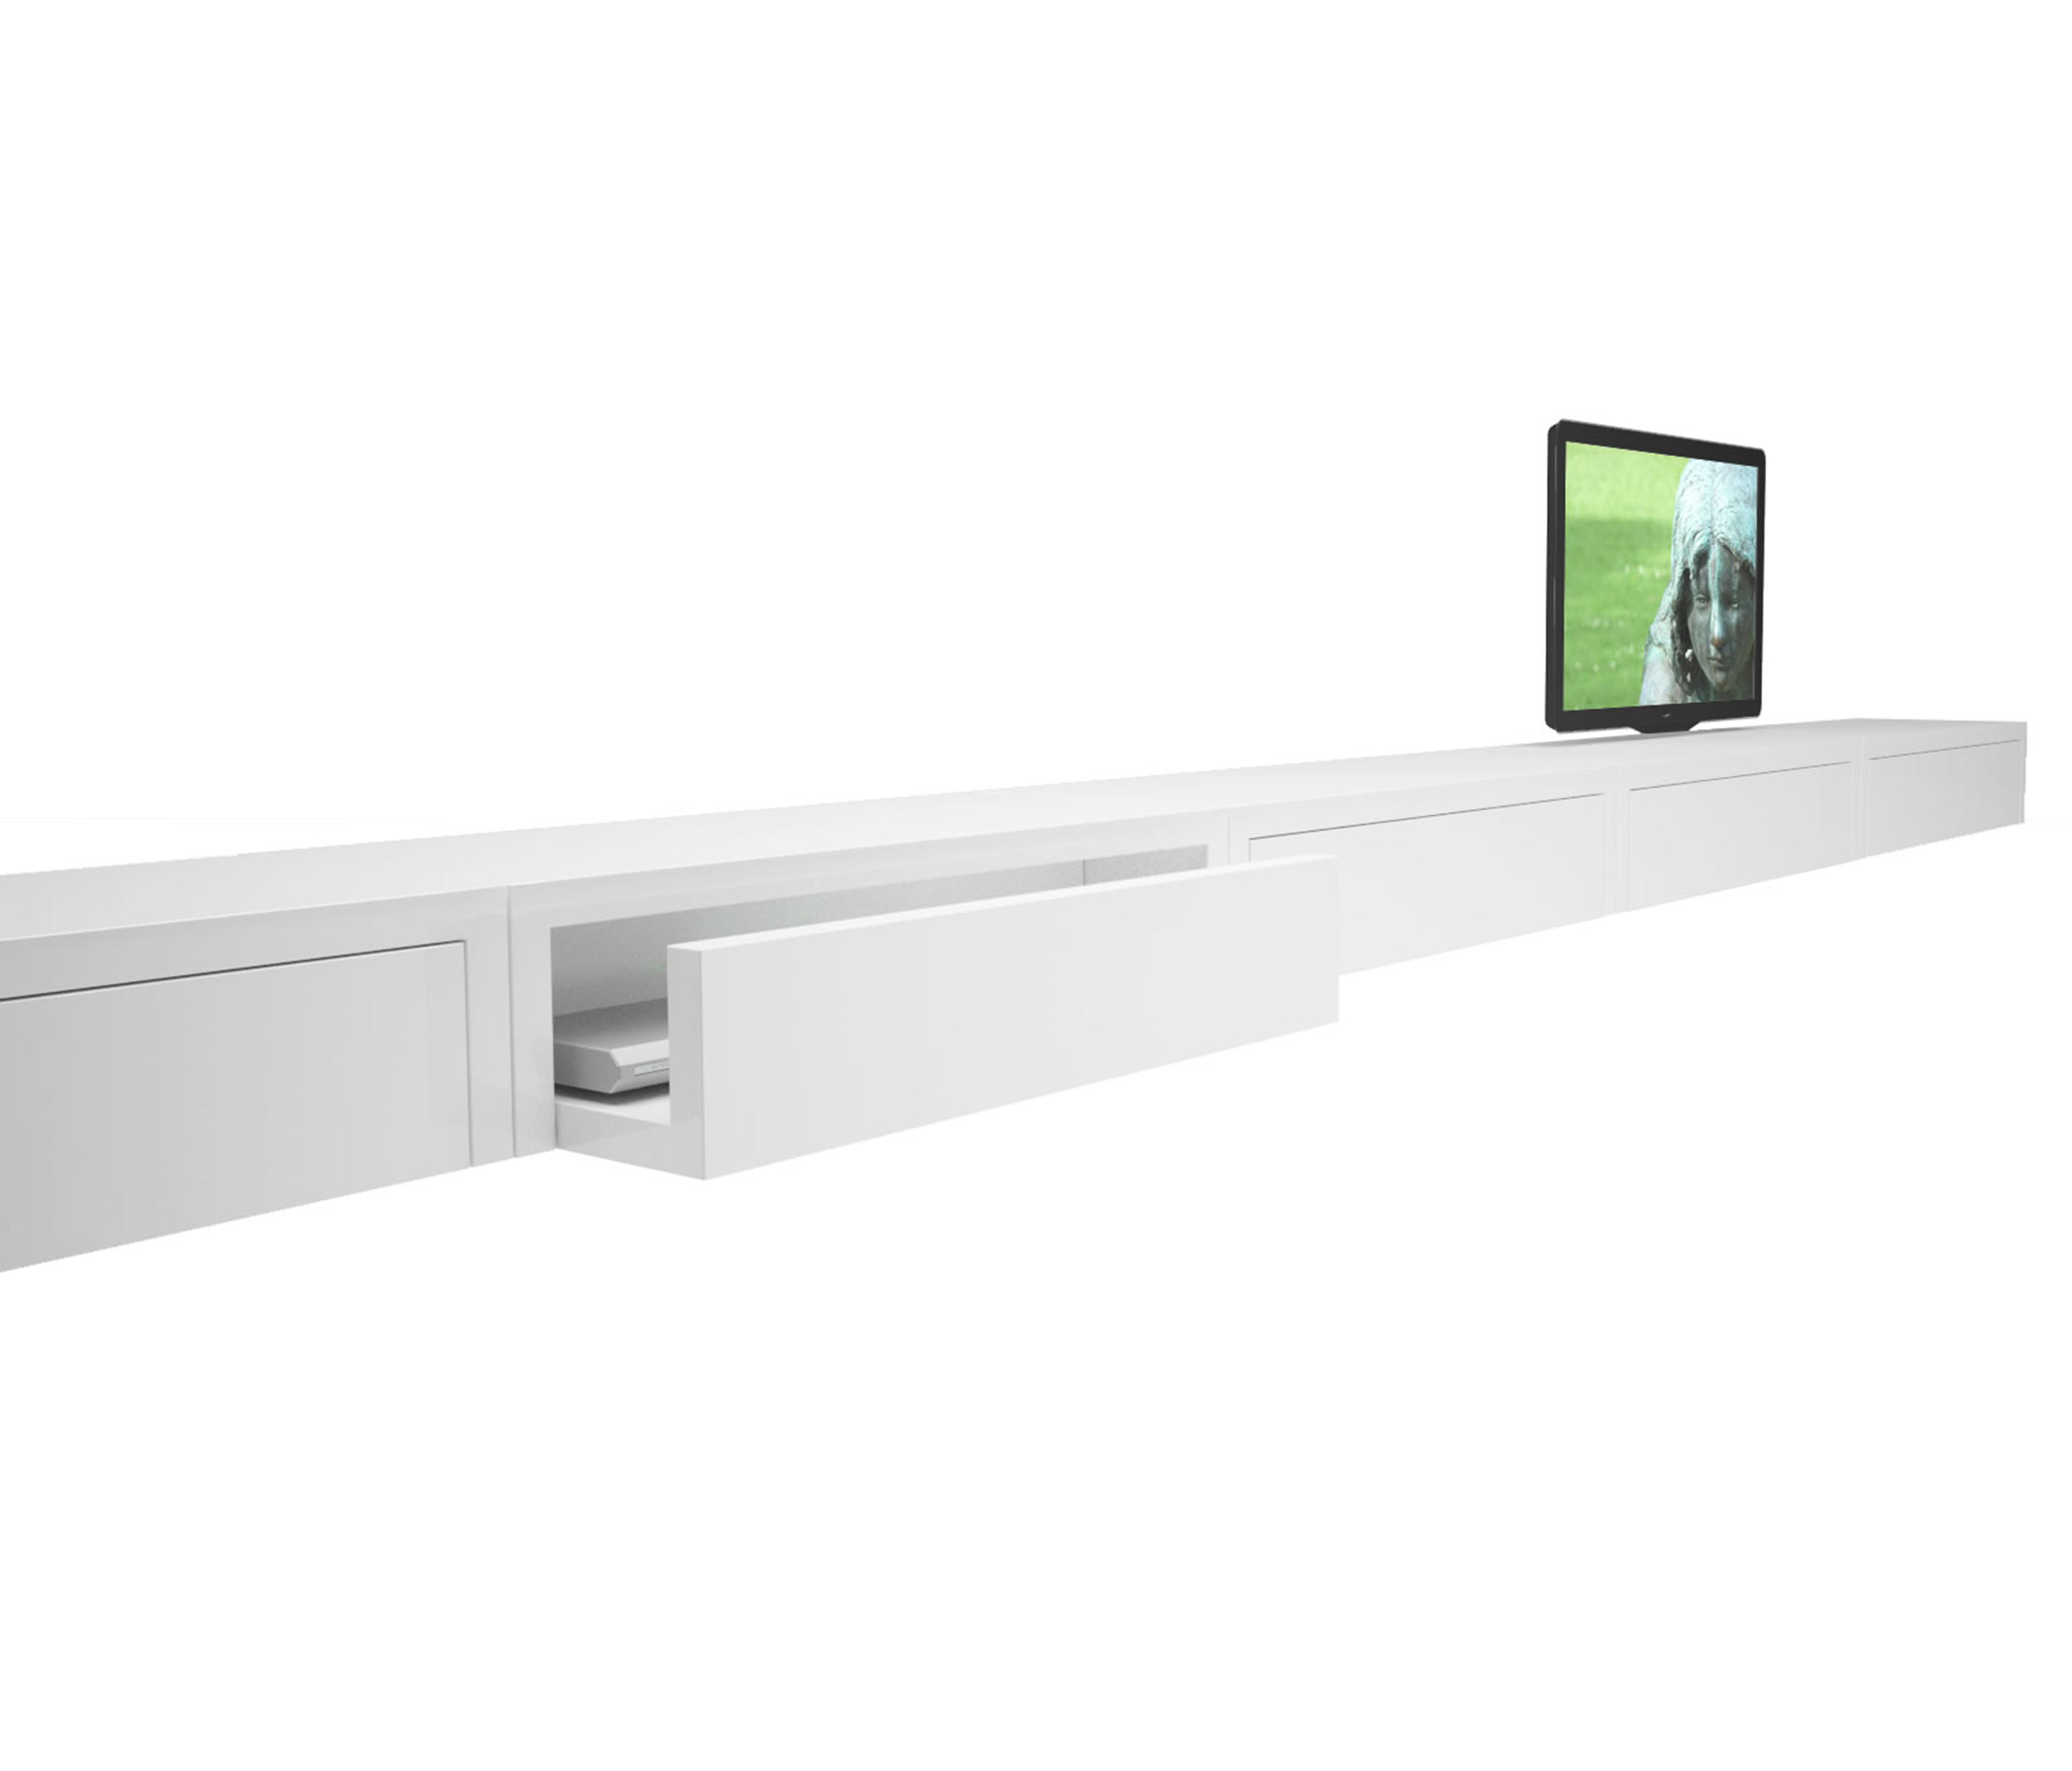 Repositio Sideboard Designer Furniture Architonic